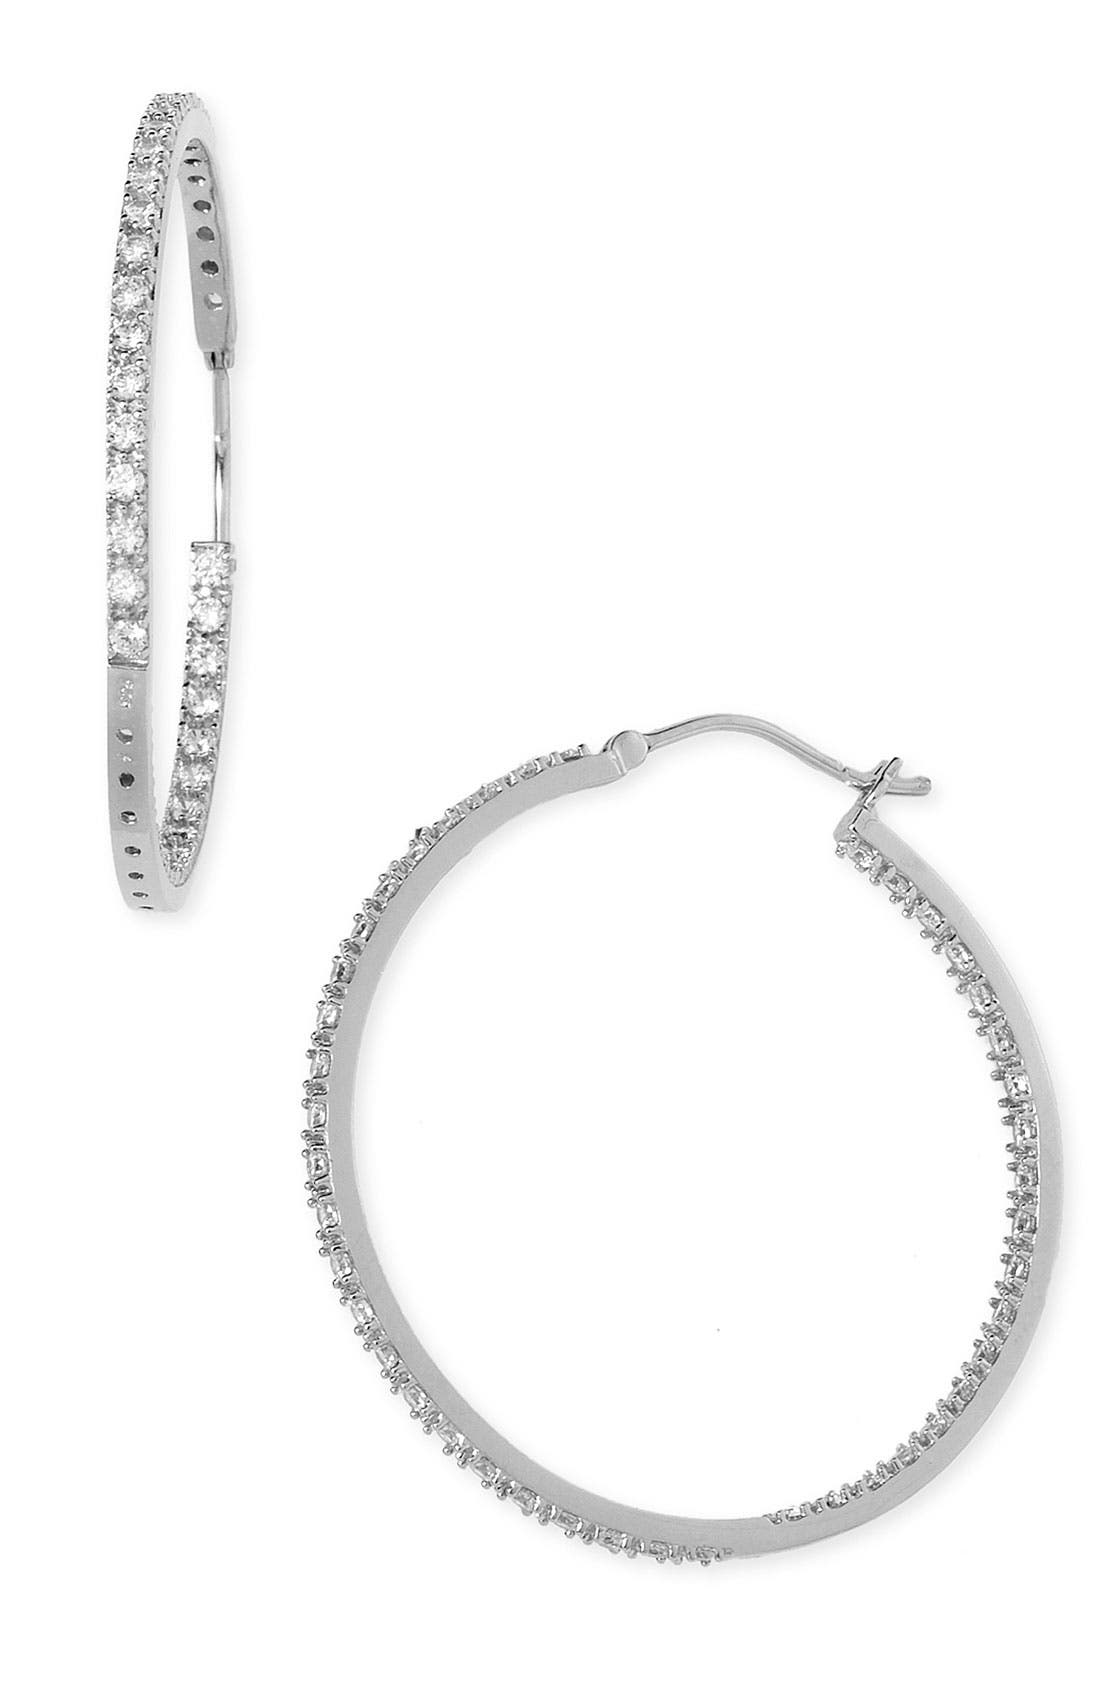 Alternate Image 1 Selected - Nordstrom 'Inside Out' Cubic Zirconia Hoop Earrings